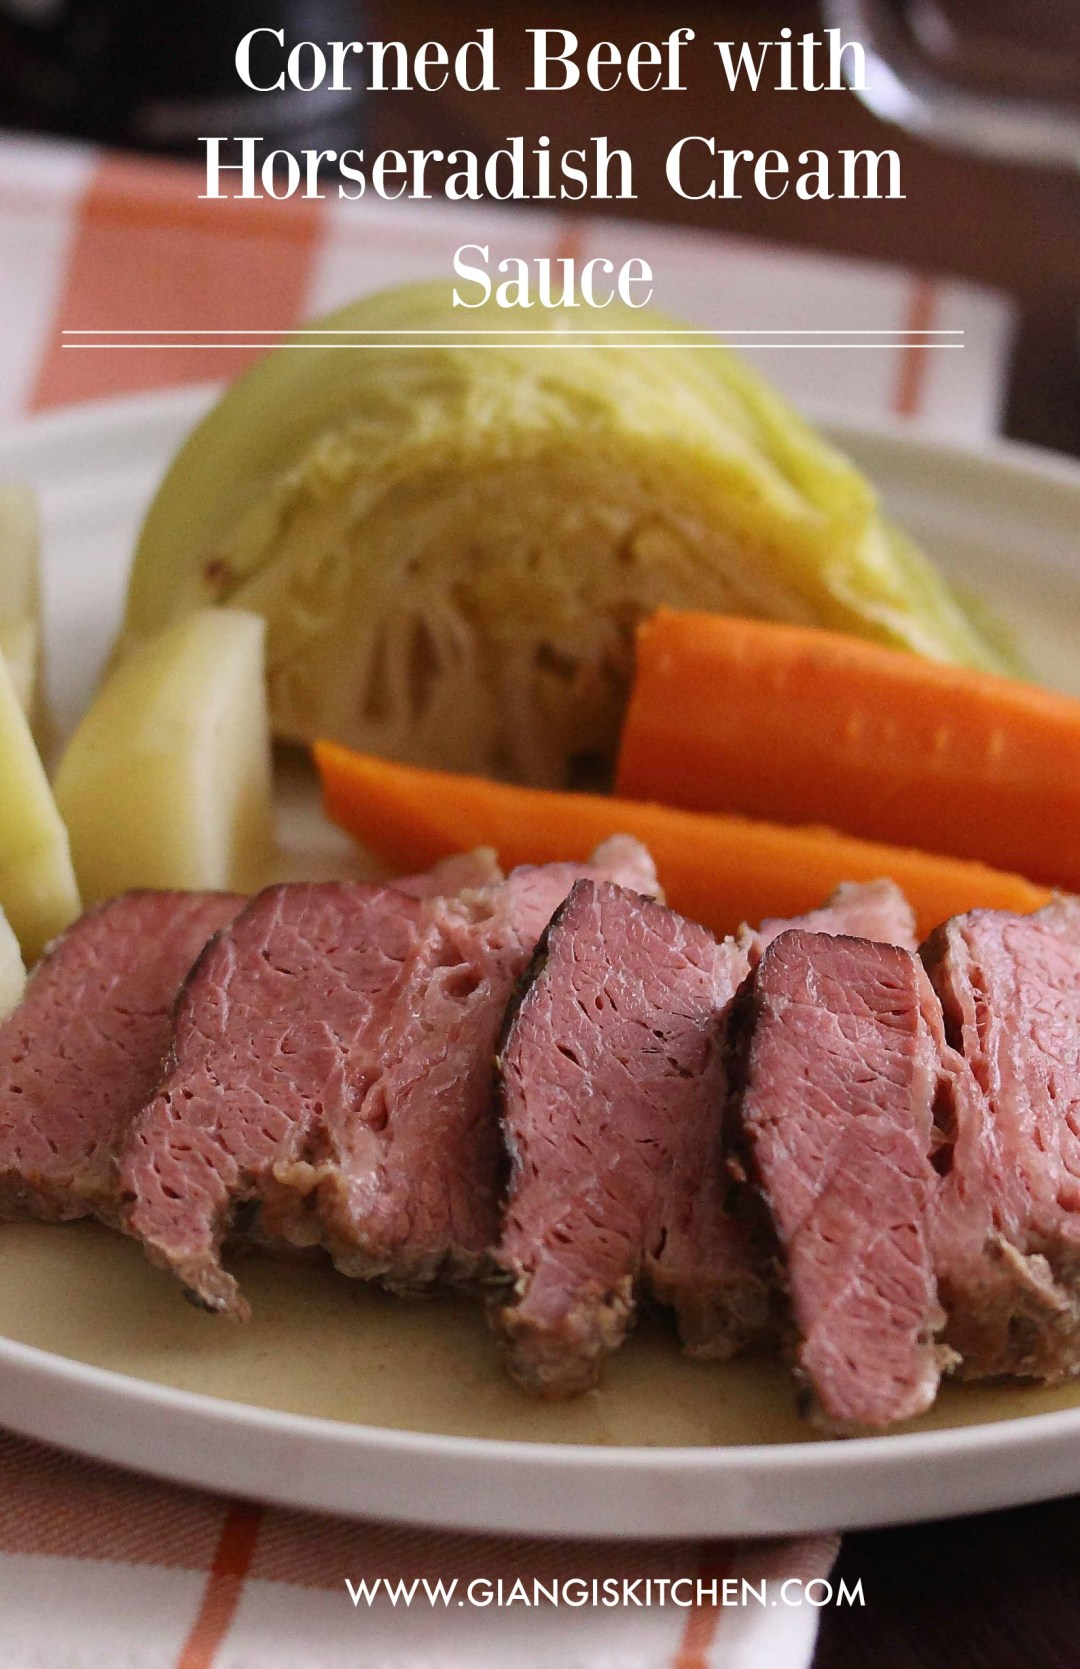 Corned Beef with Horseradish Cream Sauce